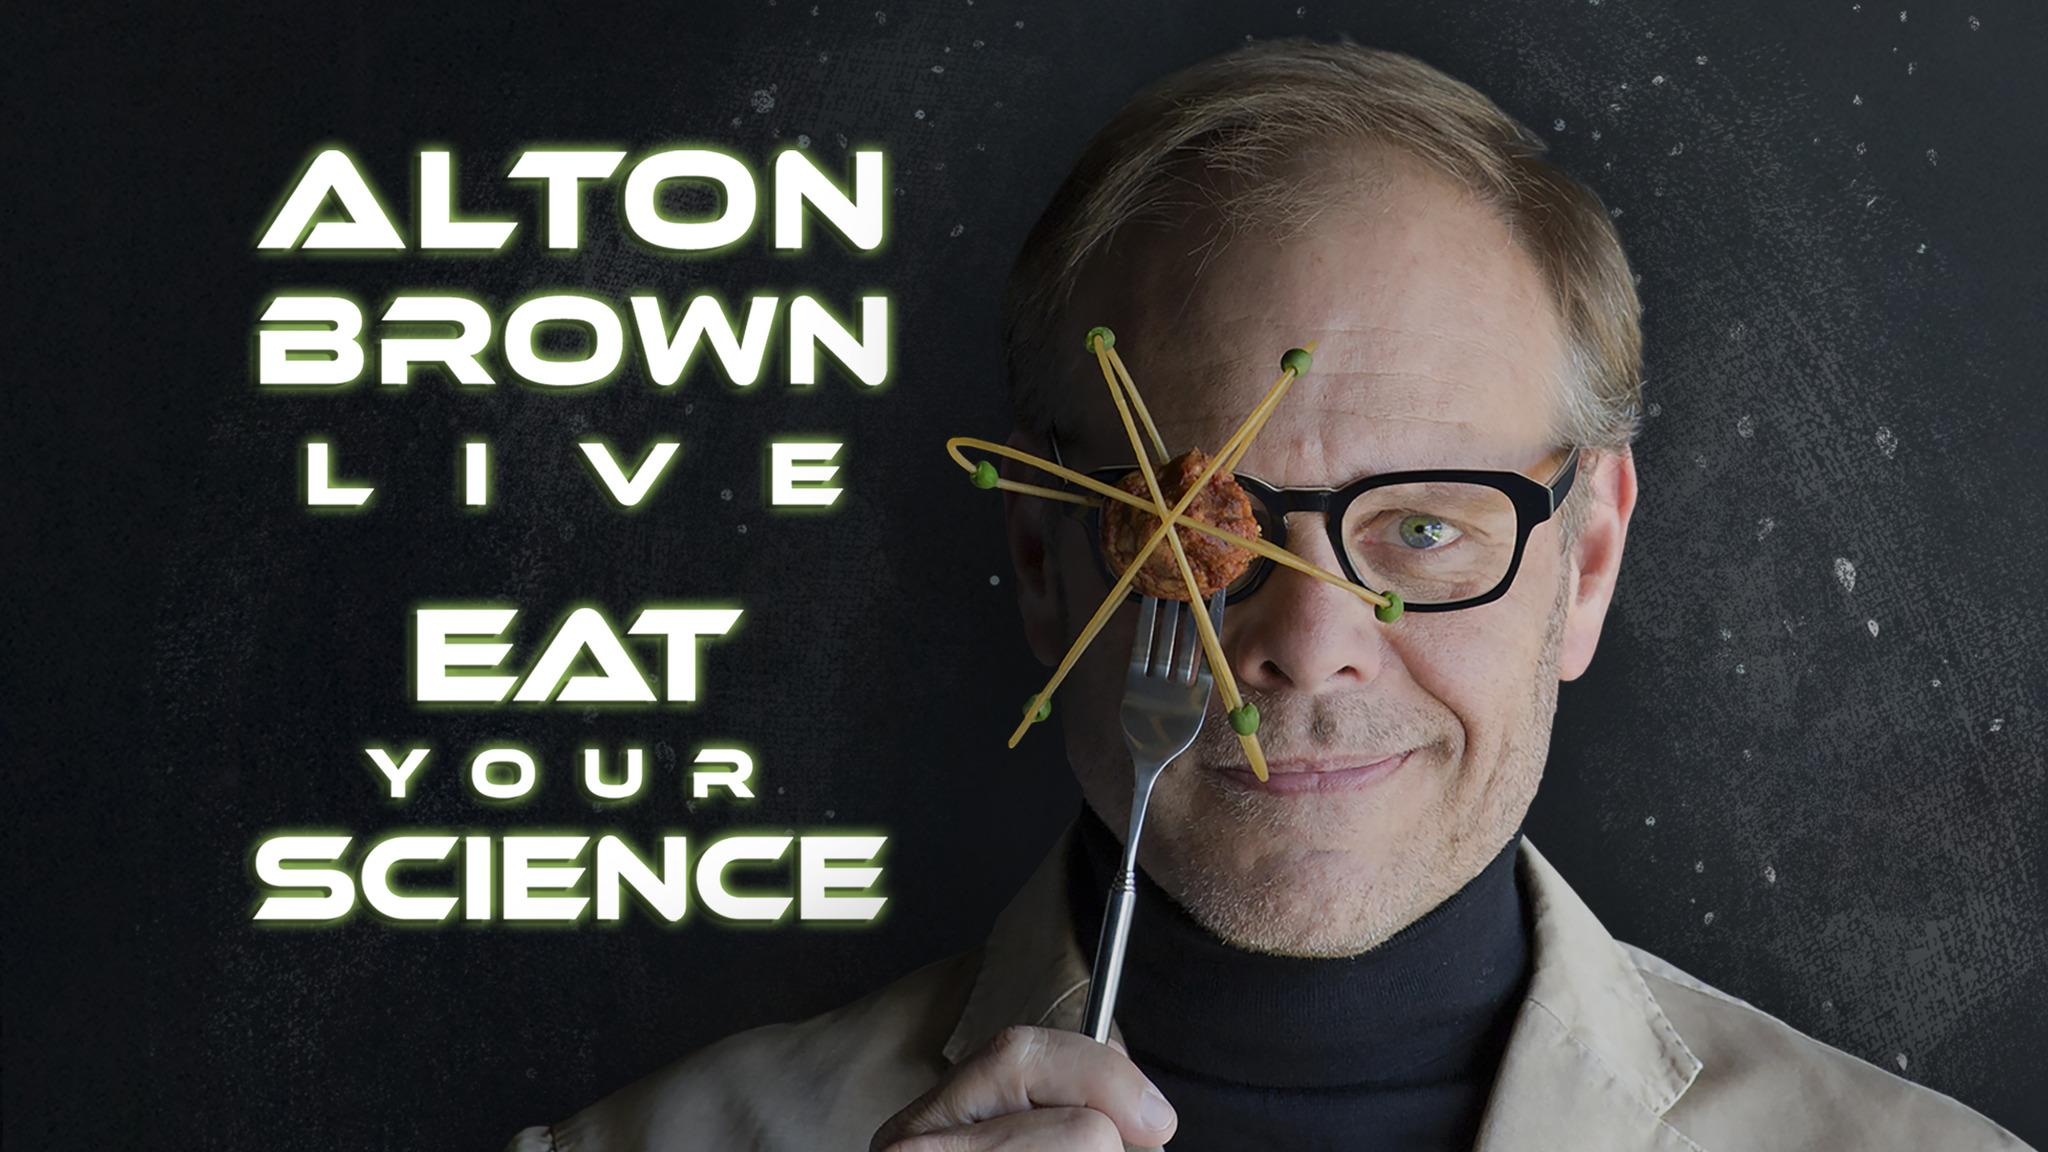 Alton Brown Live-Eat Your Science at Genesee Theatre